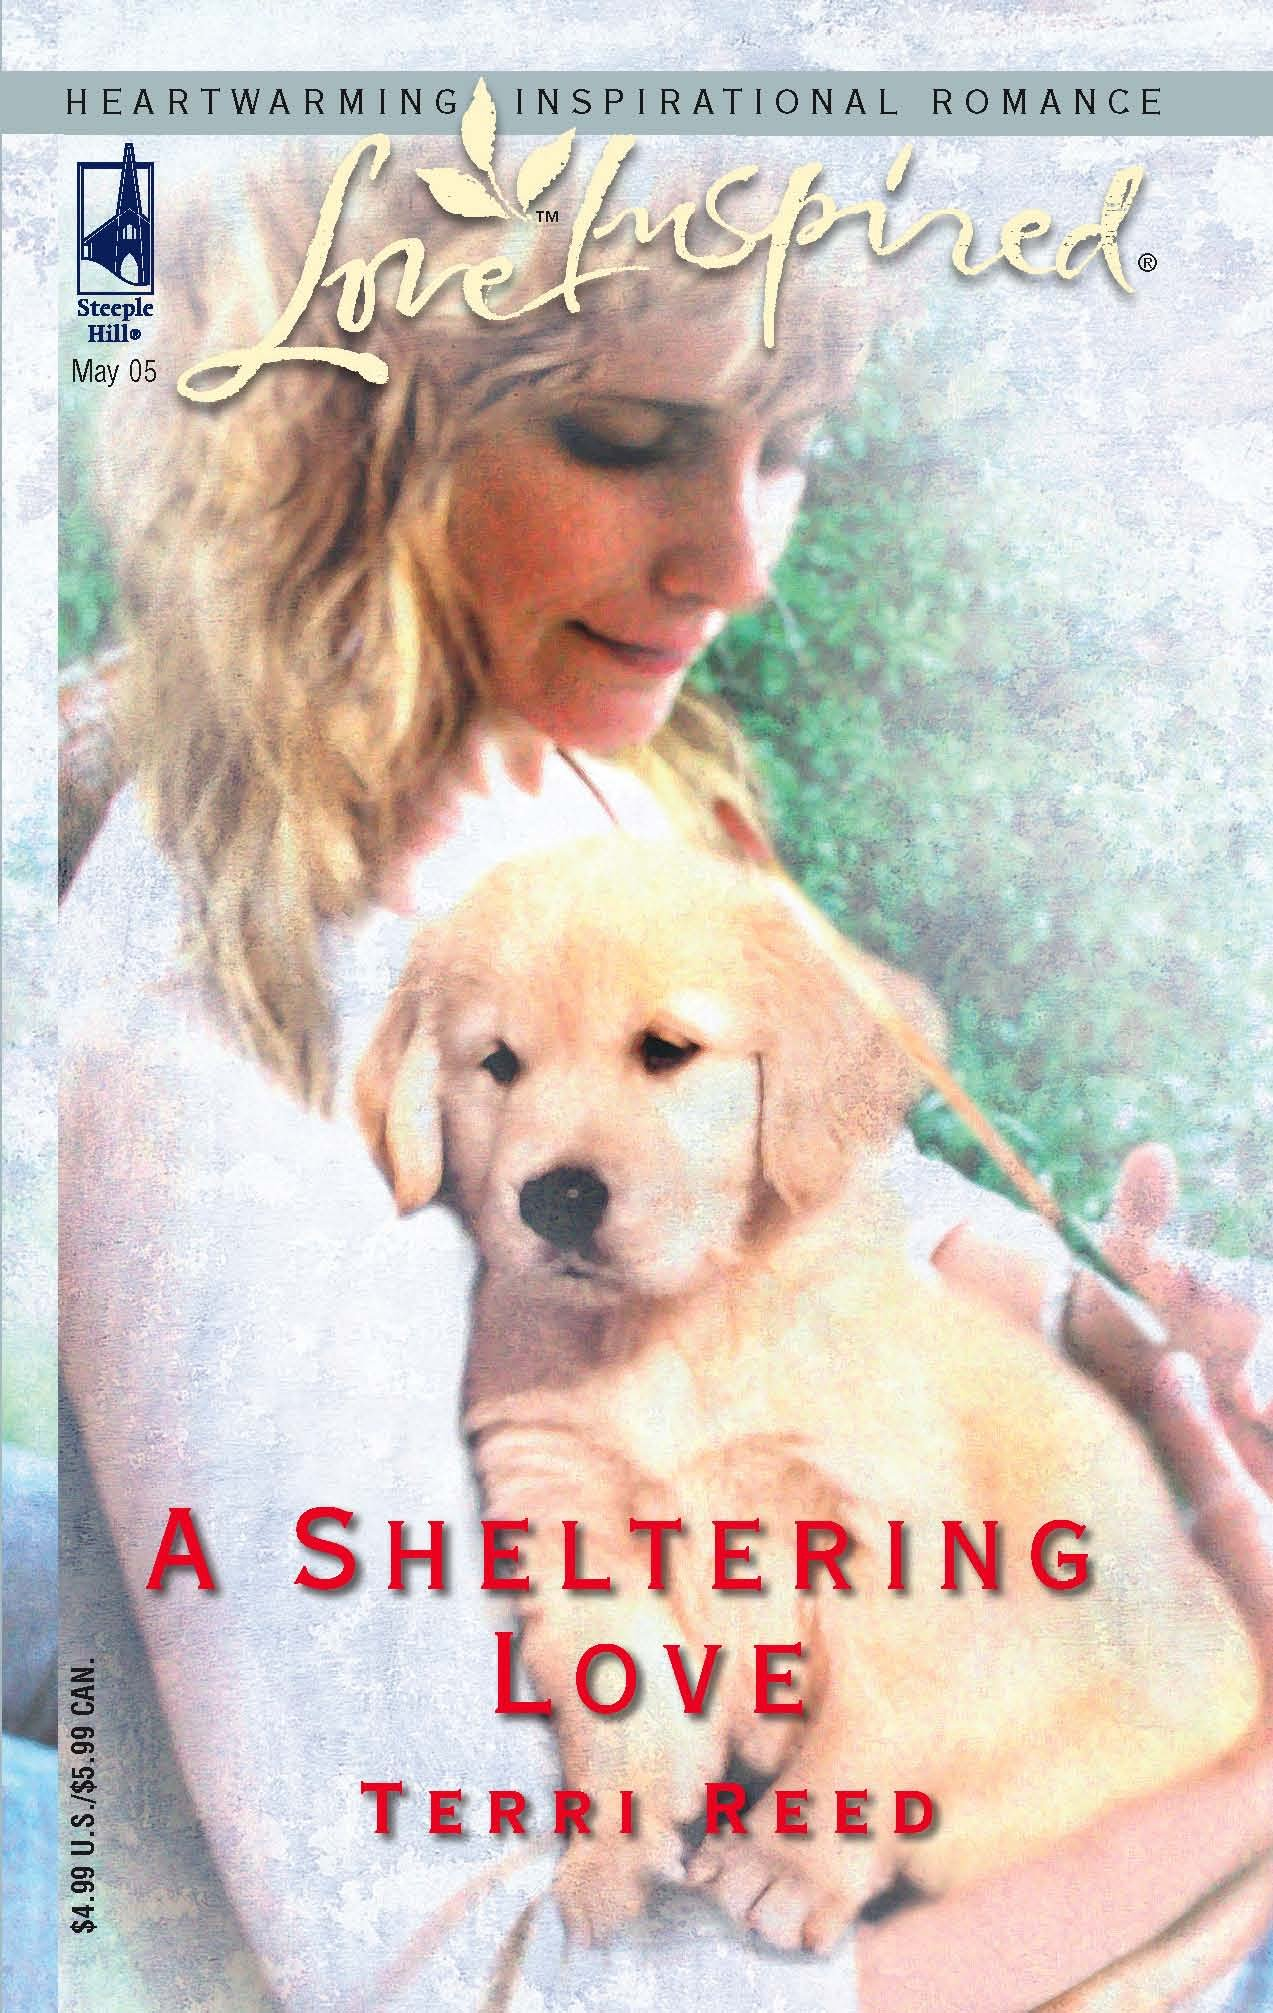 a sheltering heart reed terri